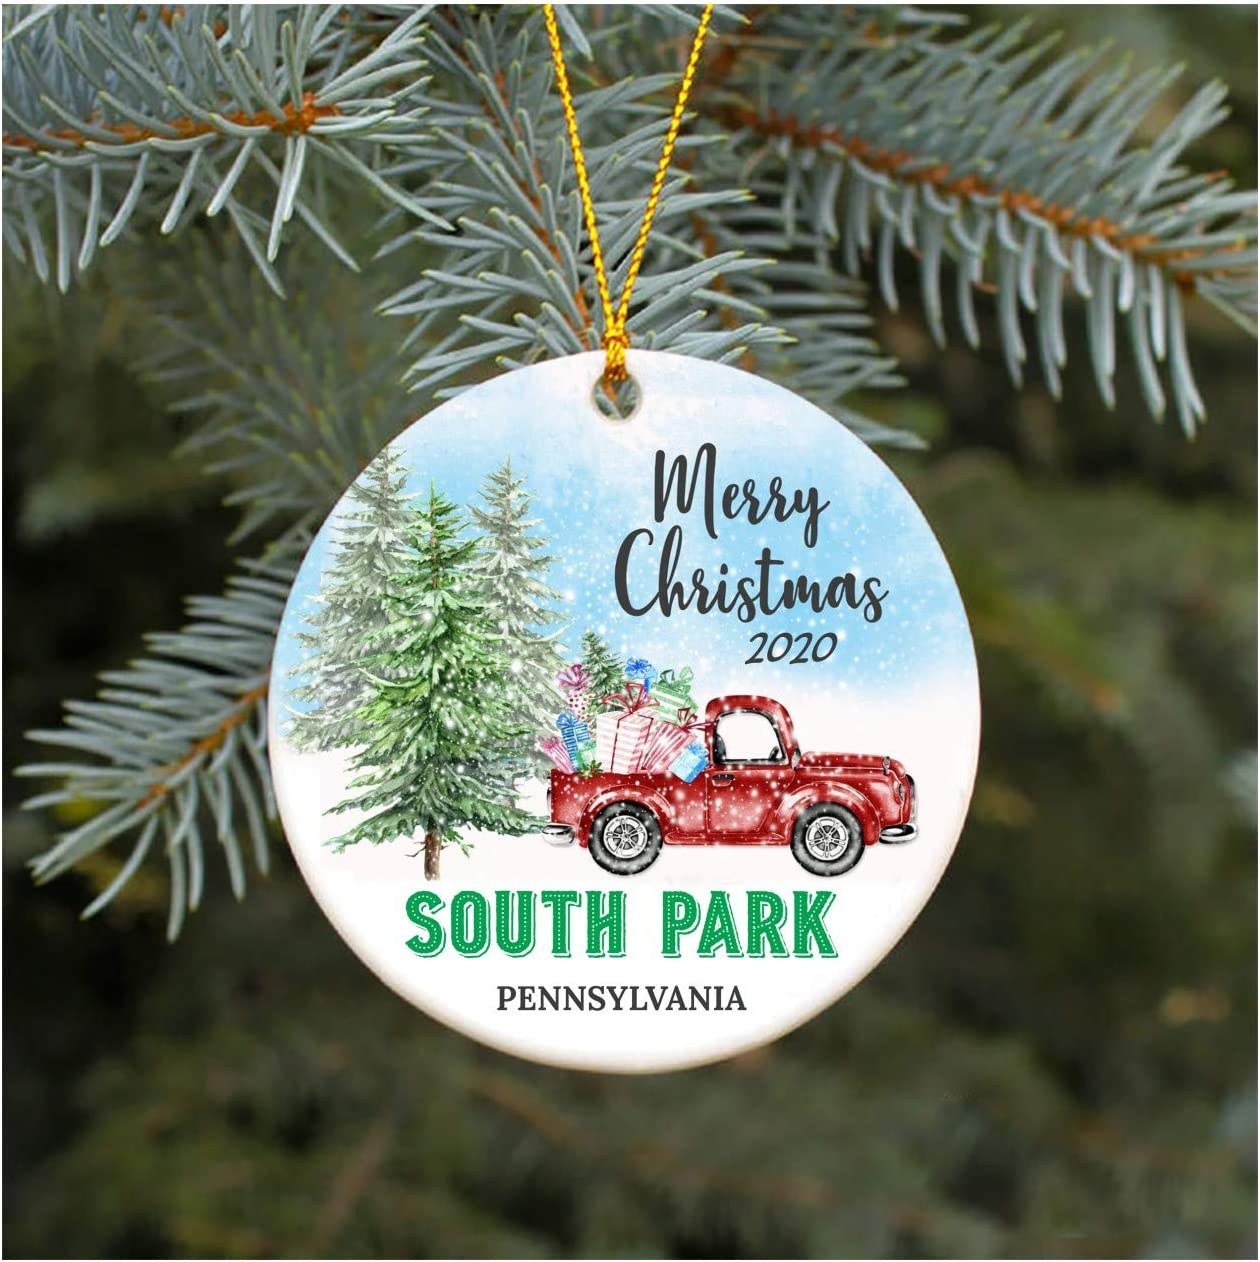 South Park Christmas 2020 Amazon.com: Christmas Ornament 2020 South Park Pennsylvania PA